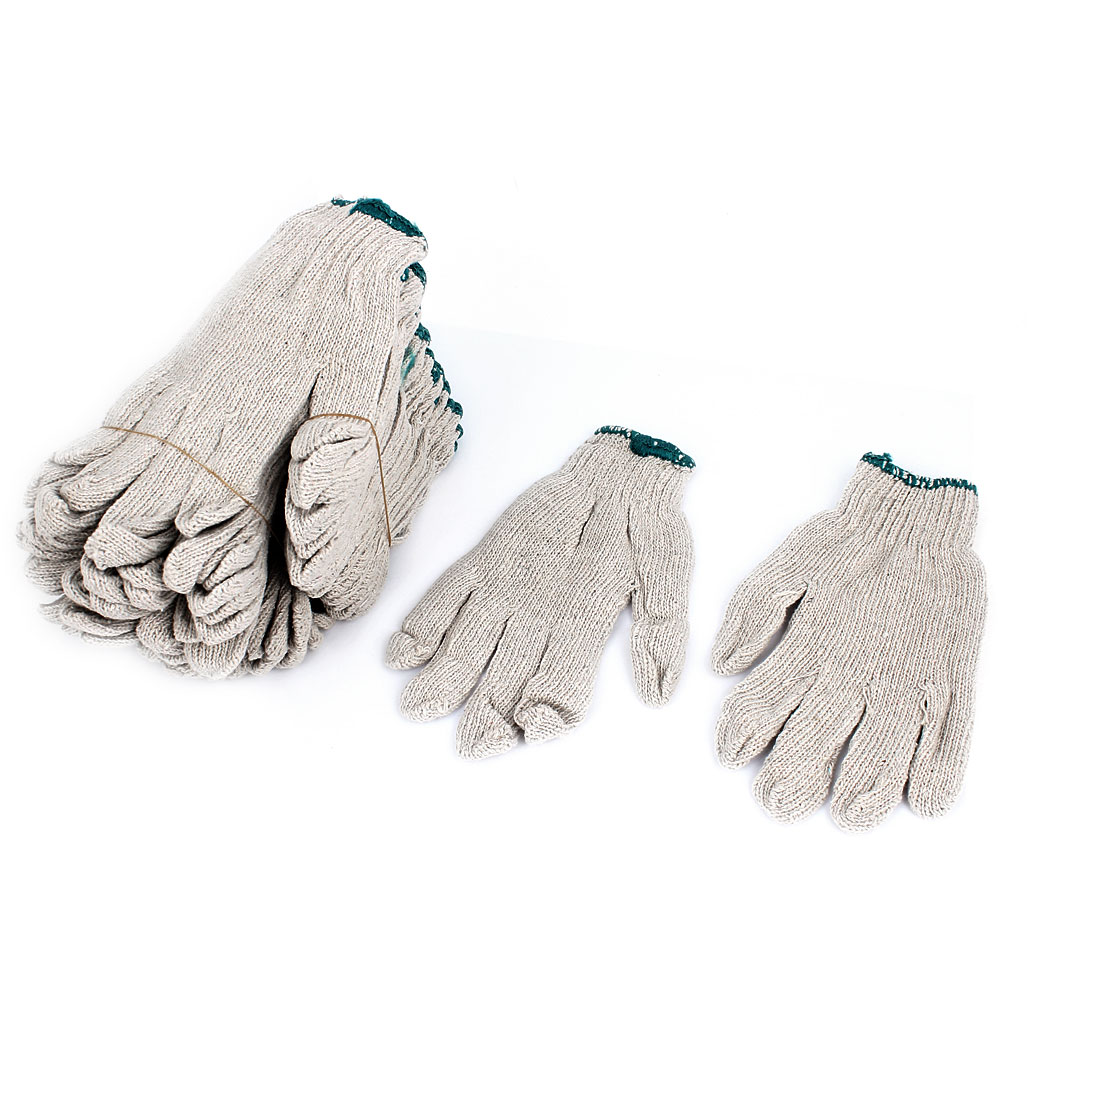 12 Pairs White Nylon Full Finger Elastic Cuff Working Gloves Protector for Workers